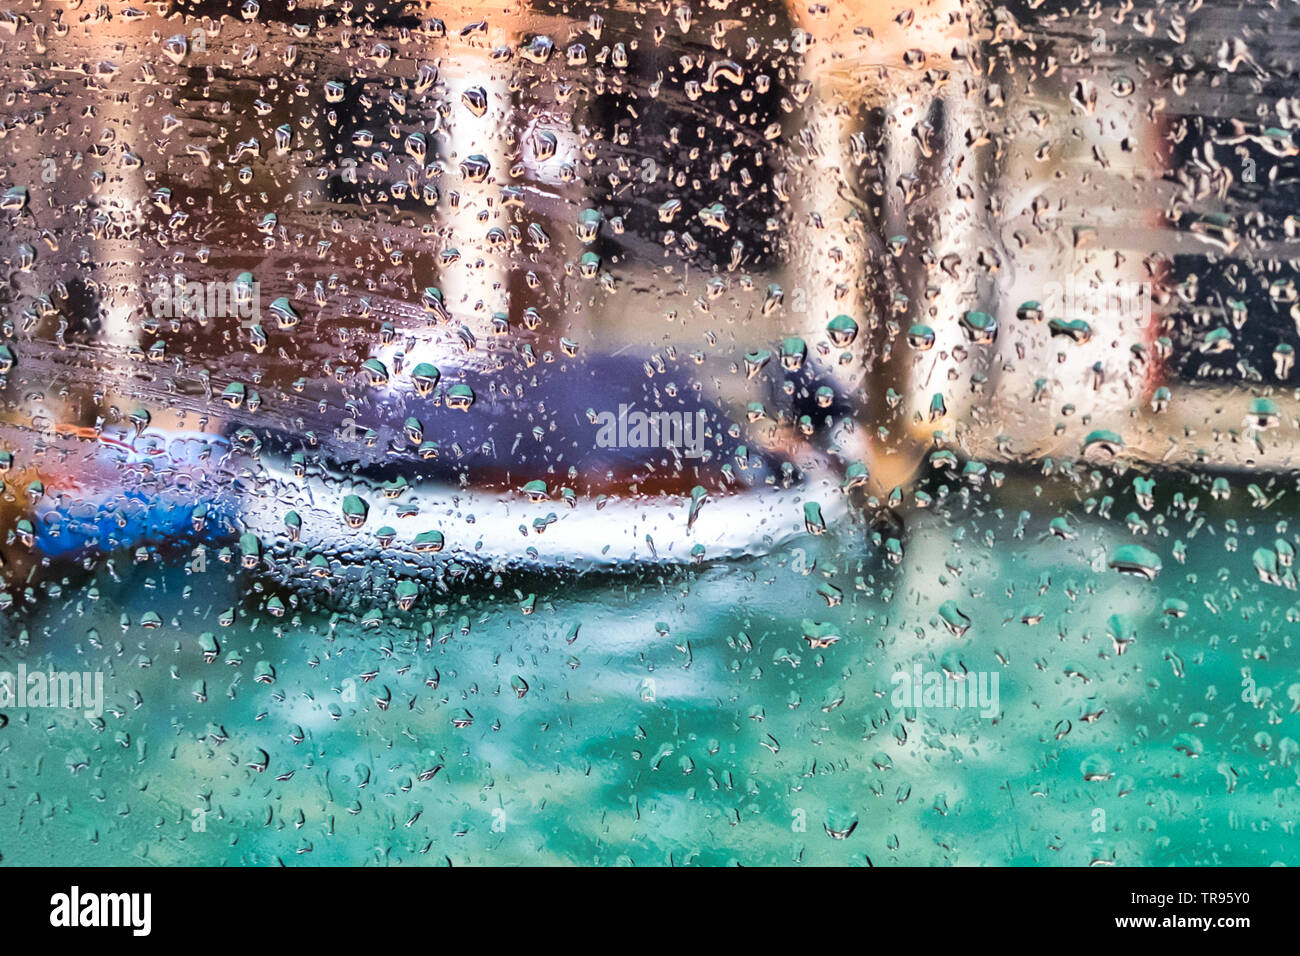 Traditional gondola boat, old Venetian palazzo and blue canal in Venice, Italy through the blurred window with rain drops - Stock Image